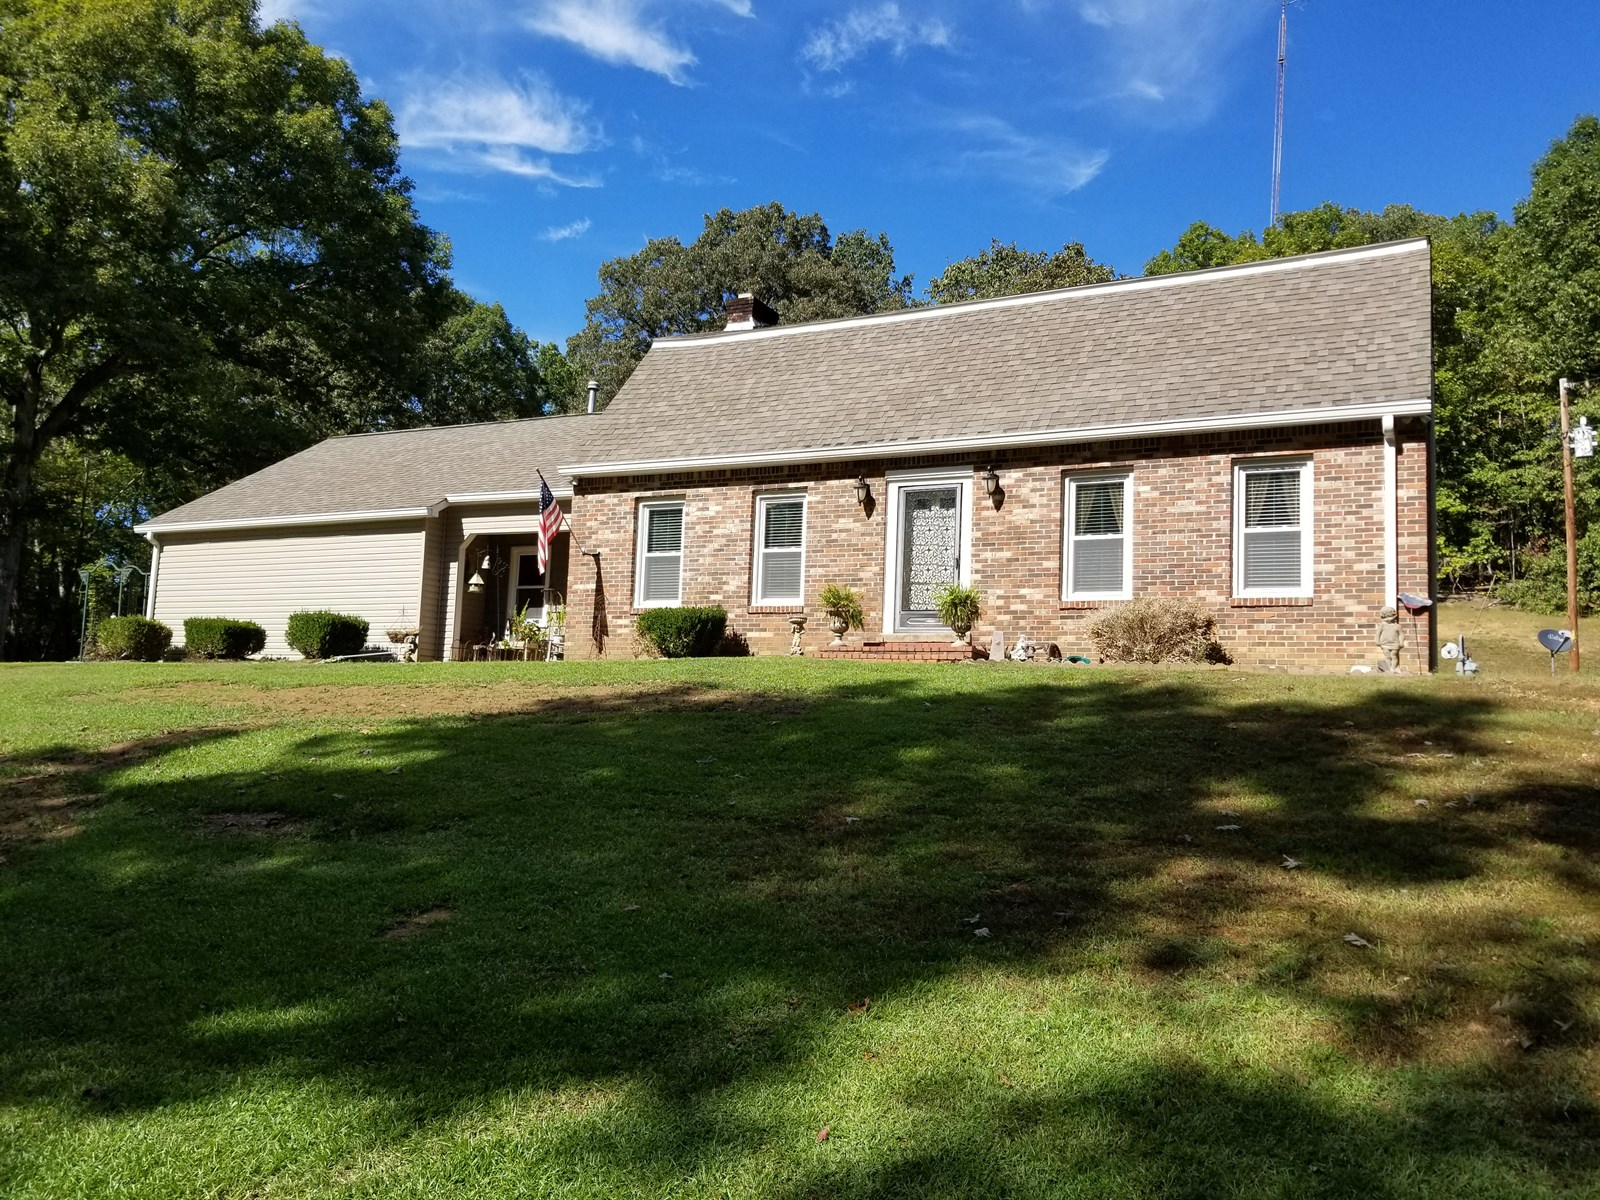 4 BR 2 BA Country Home on 5.98 Private Acres Close to Town